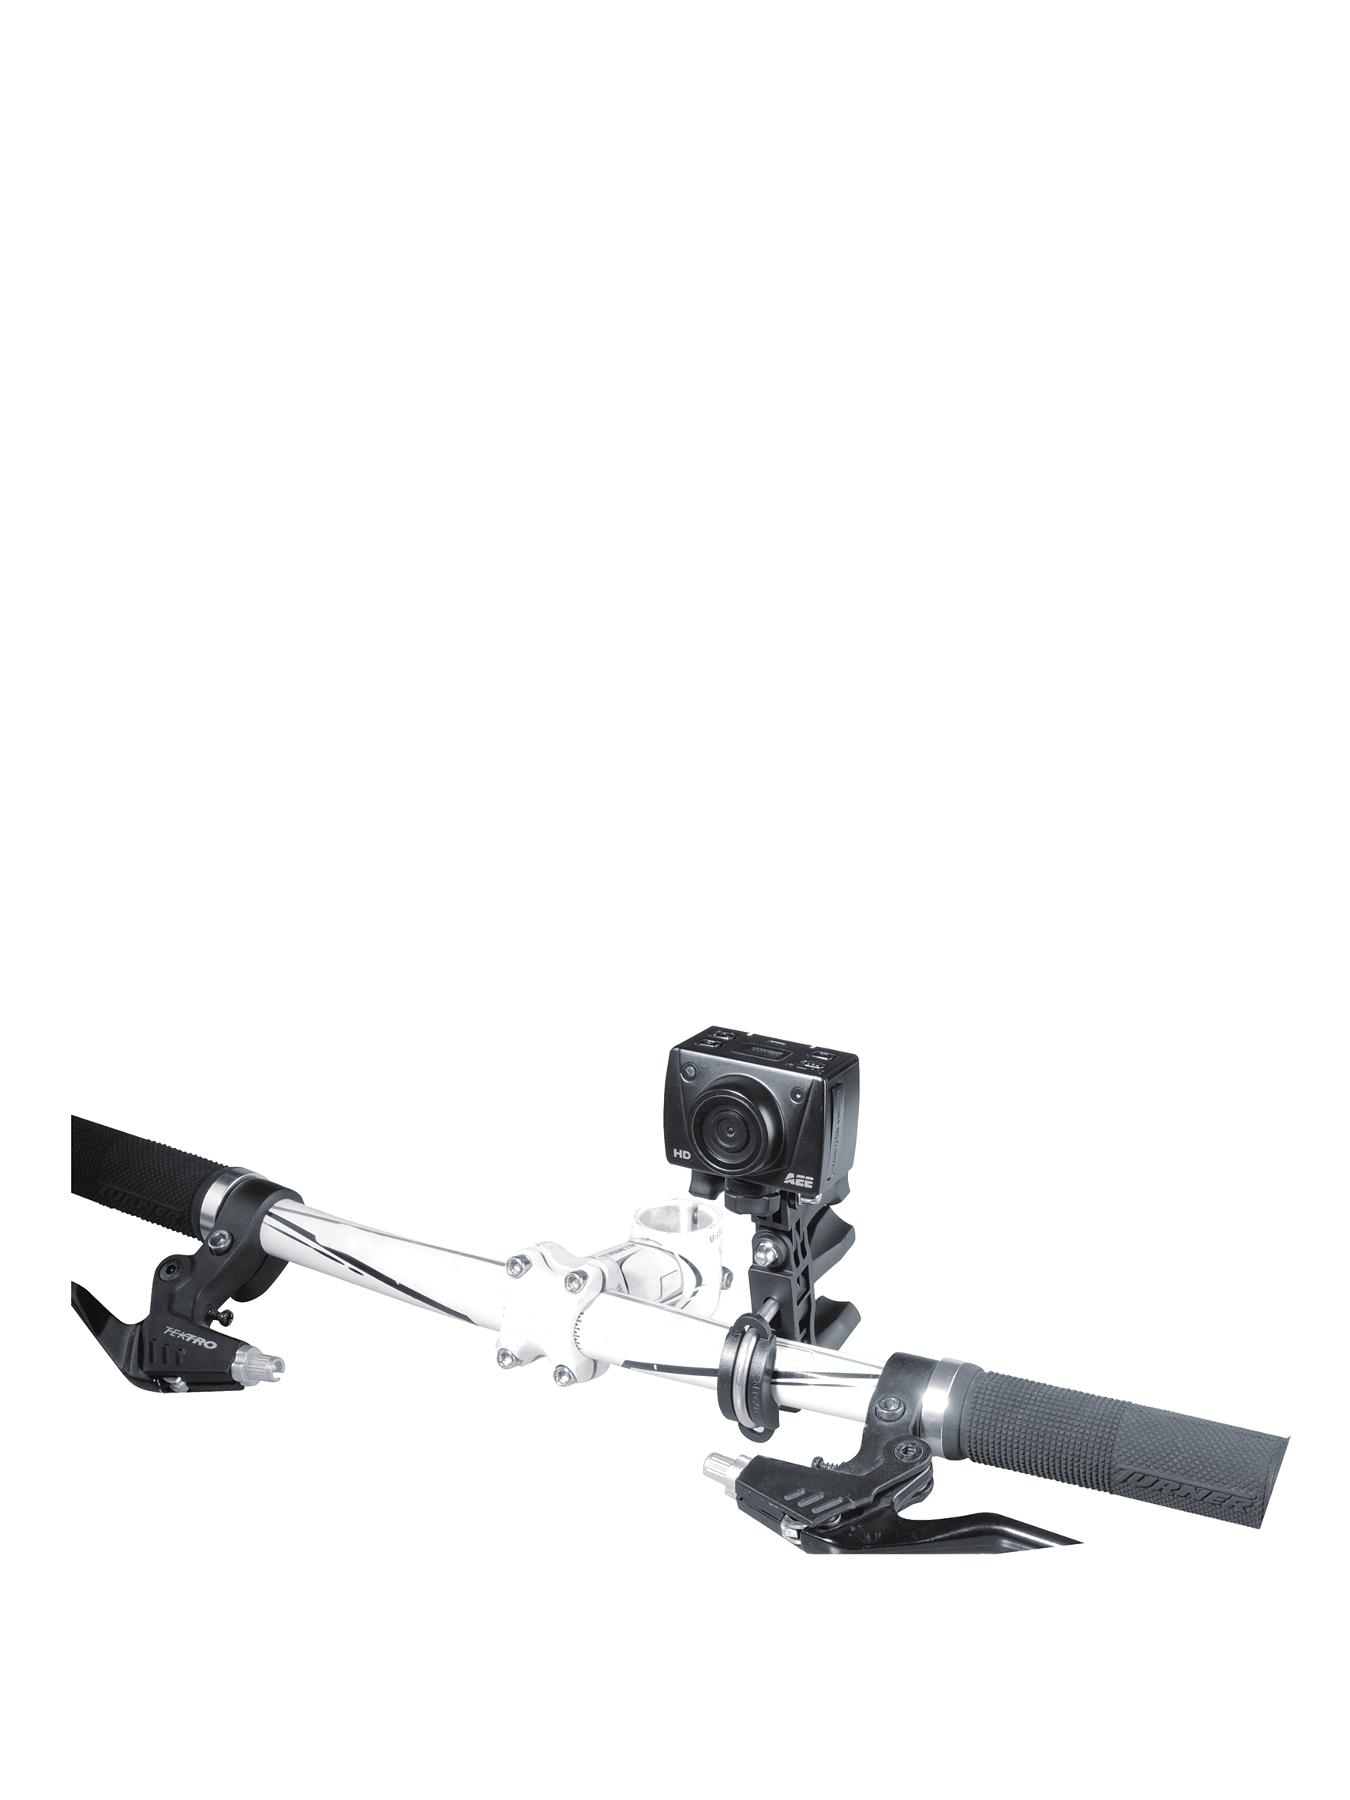 AEE Universal Fit Bicycle Mount for MagiCam Video Cameras